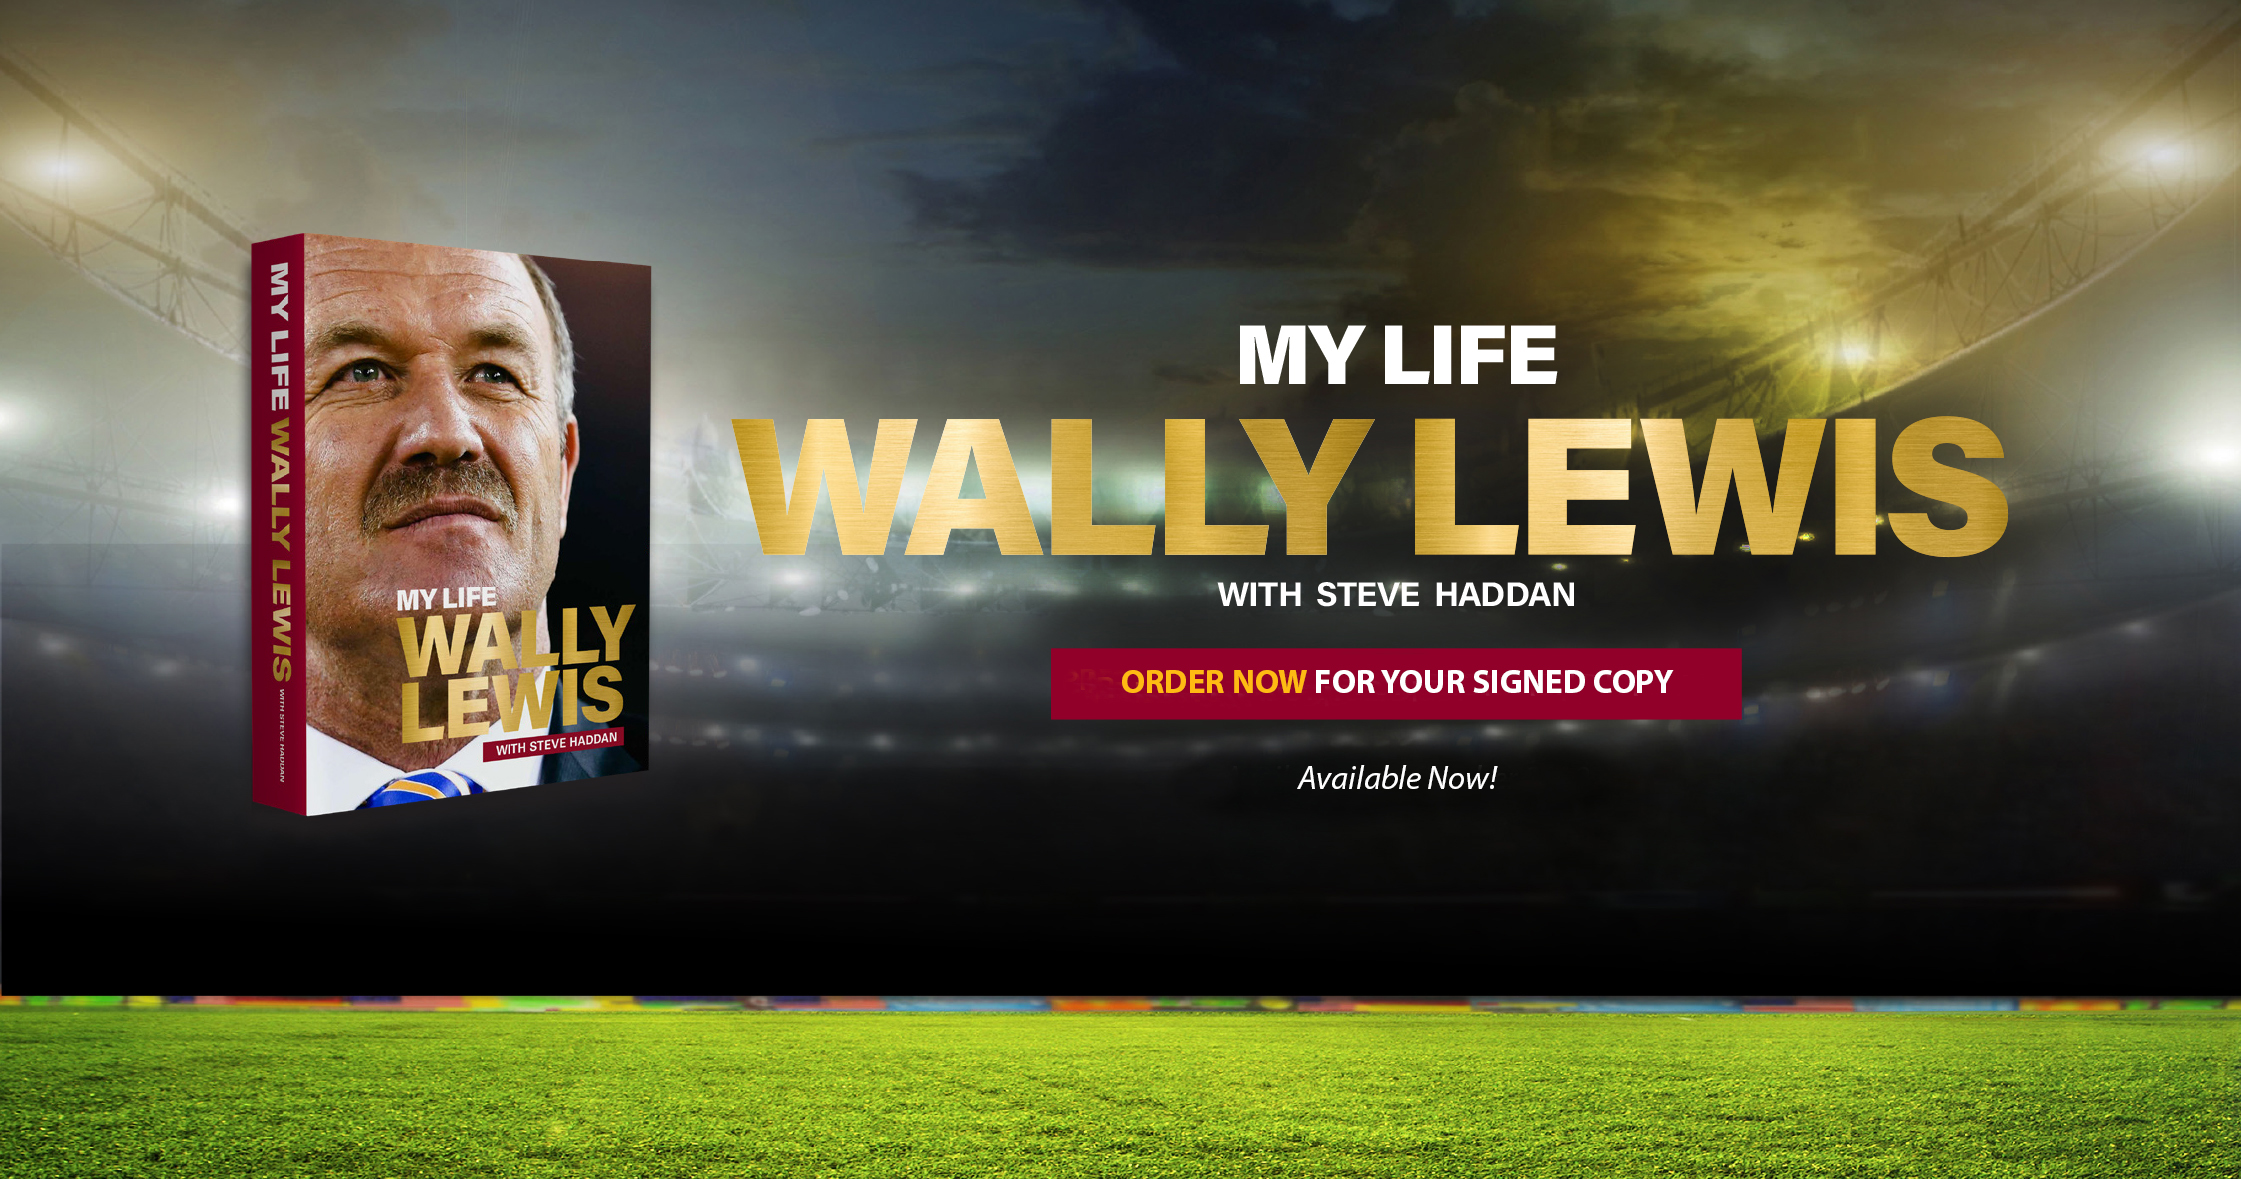 FB_MY LIFE_WallyLewis_FB Banner_Feb2021